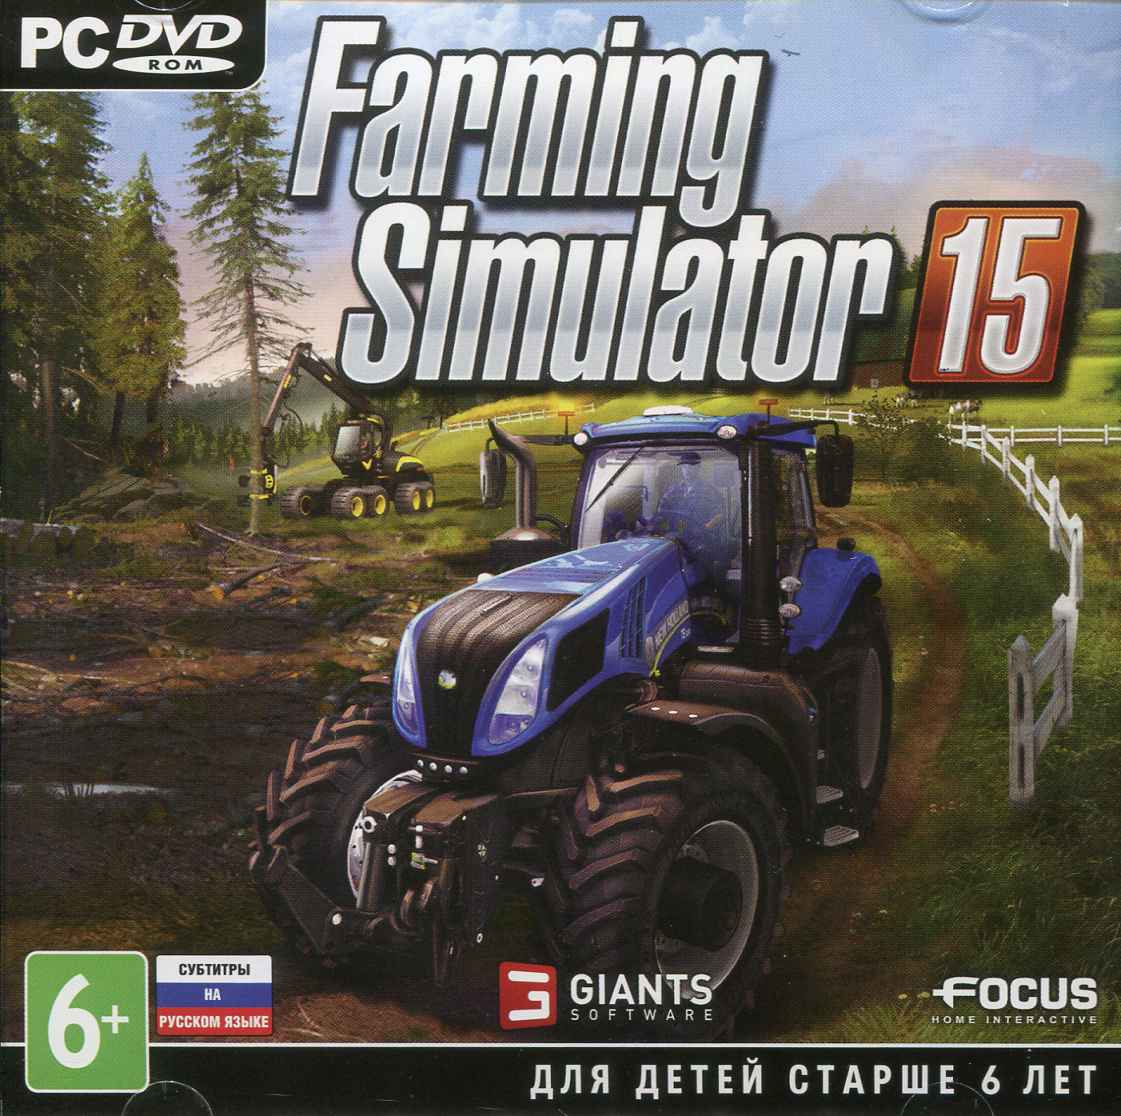 Buy Farming Simulator 2015 (activation key in Steam) and download